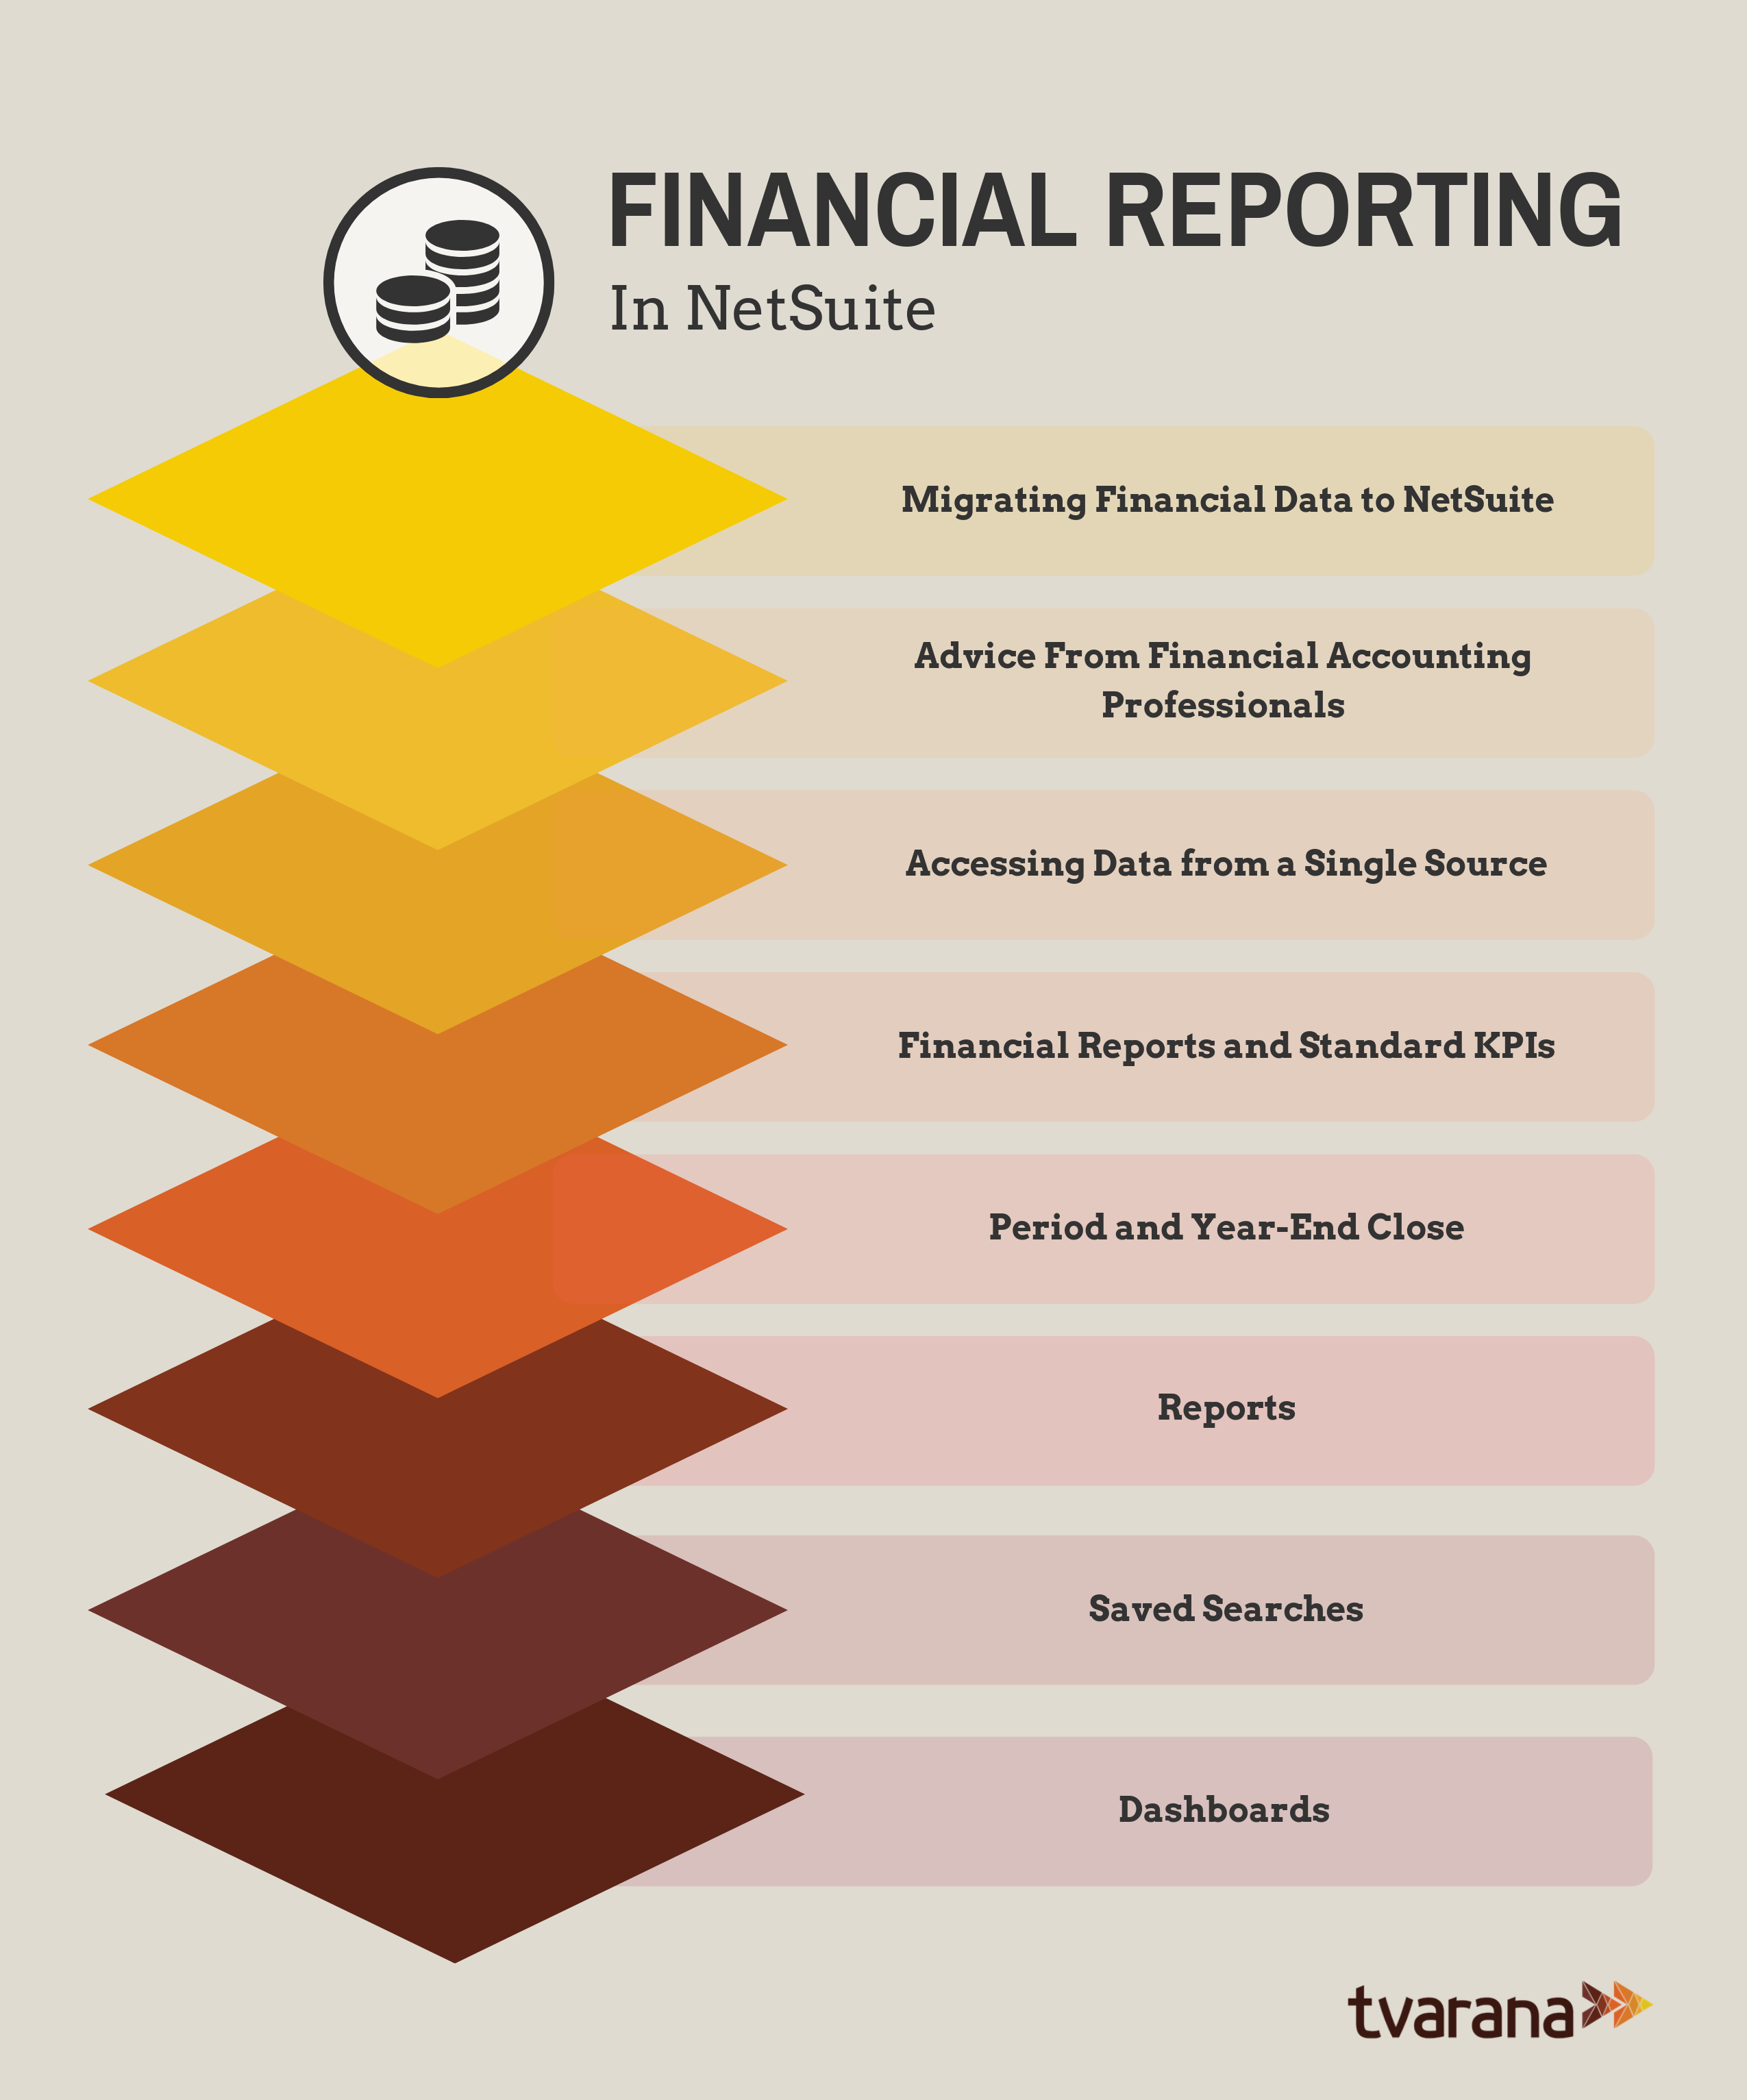 Financial Reporting in netSuite